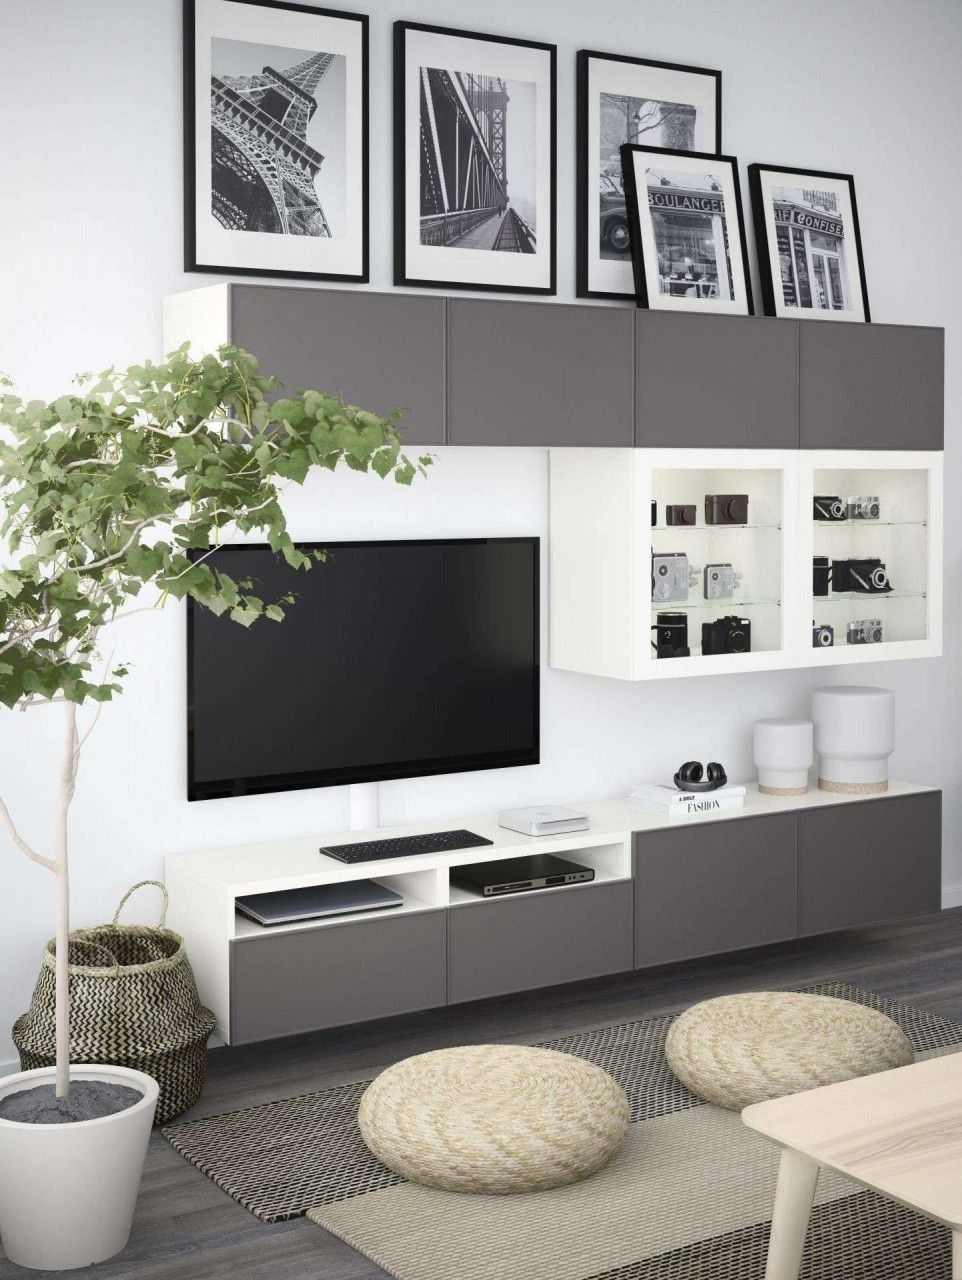 28 Lovely Ikea Wood Coffee Table 2020 Small Living Room Ideas